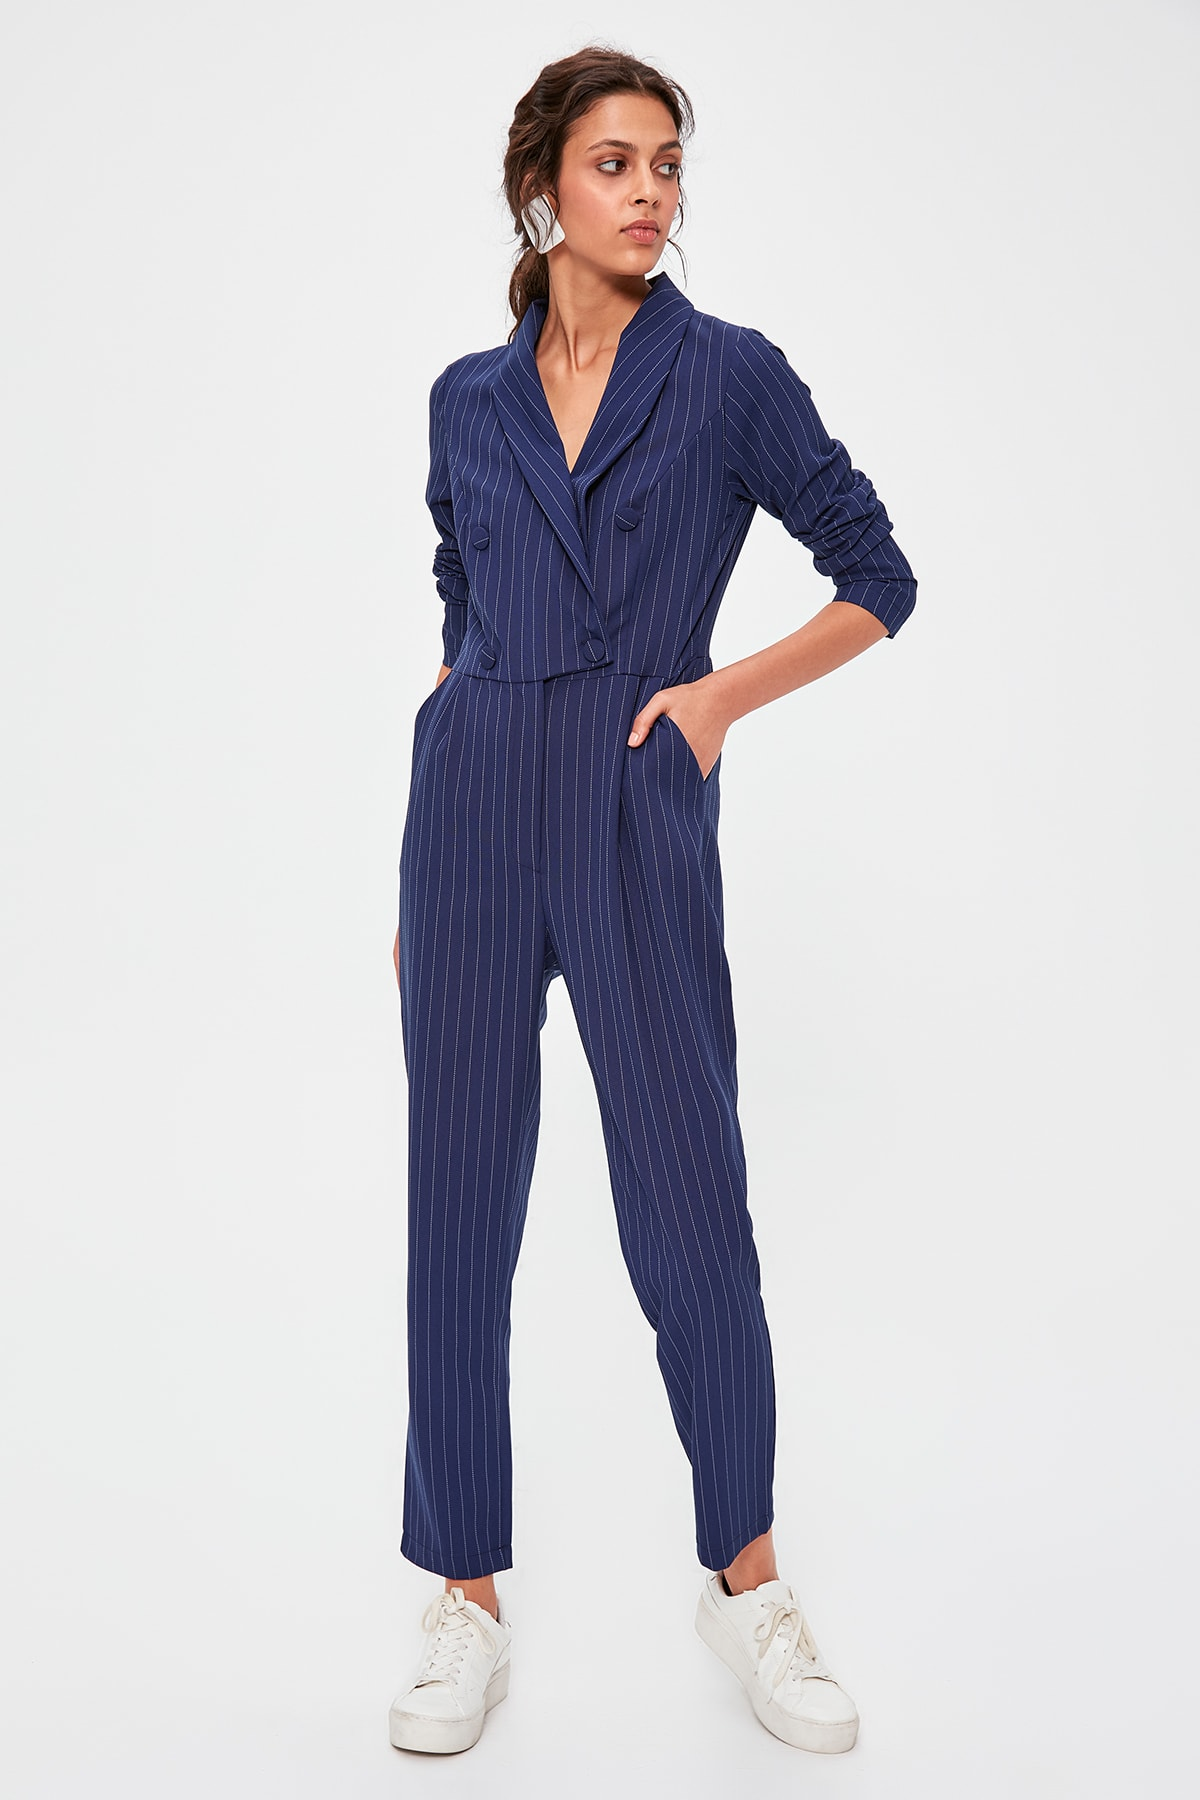 Trendyol Navy Blue Striped Jumpsuit TWOAW20TU0022